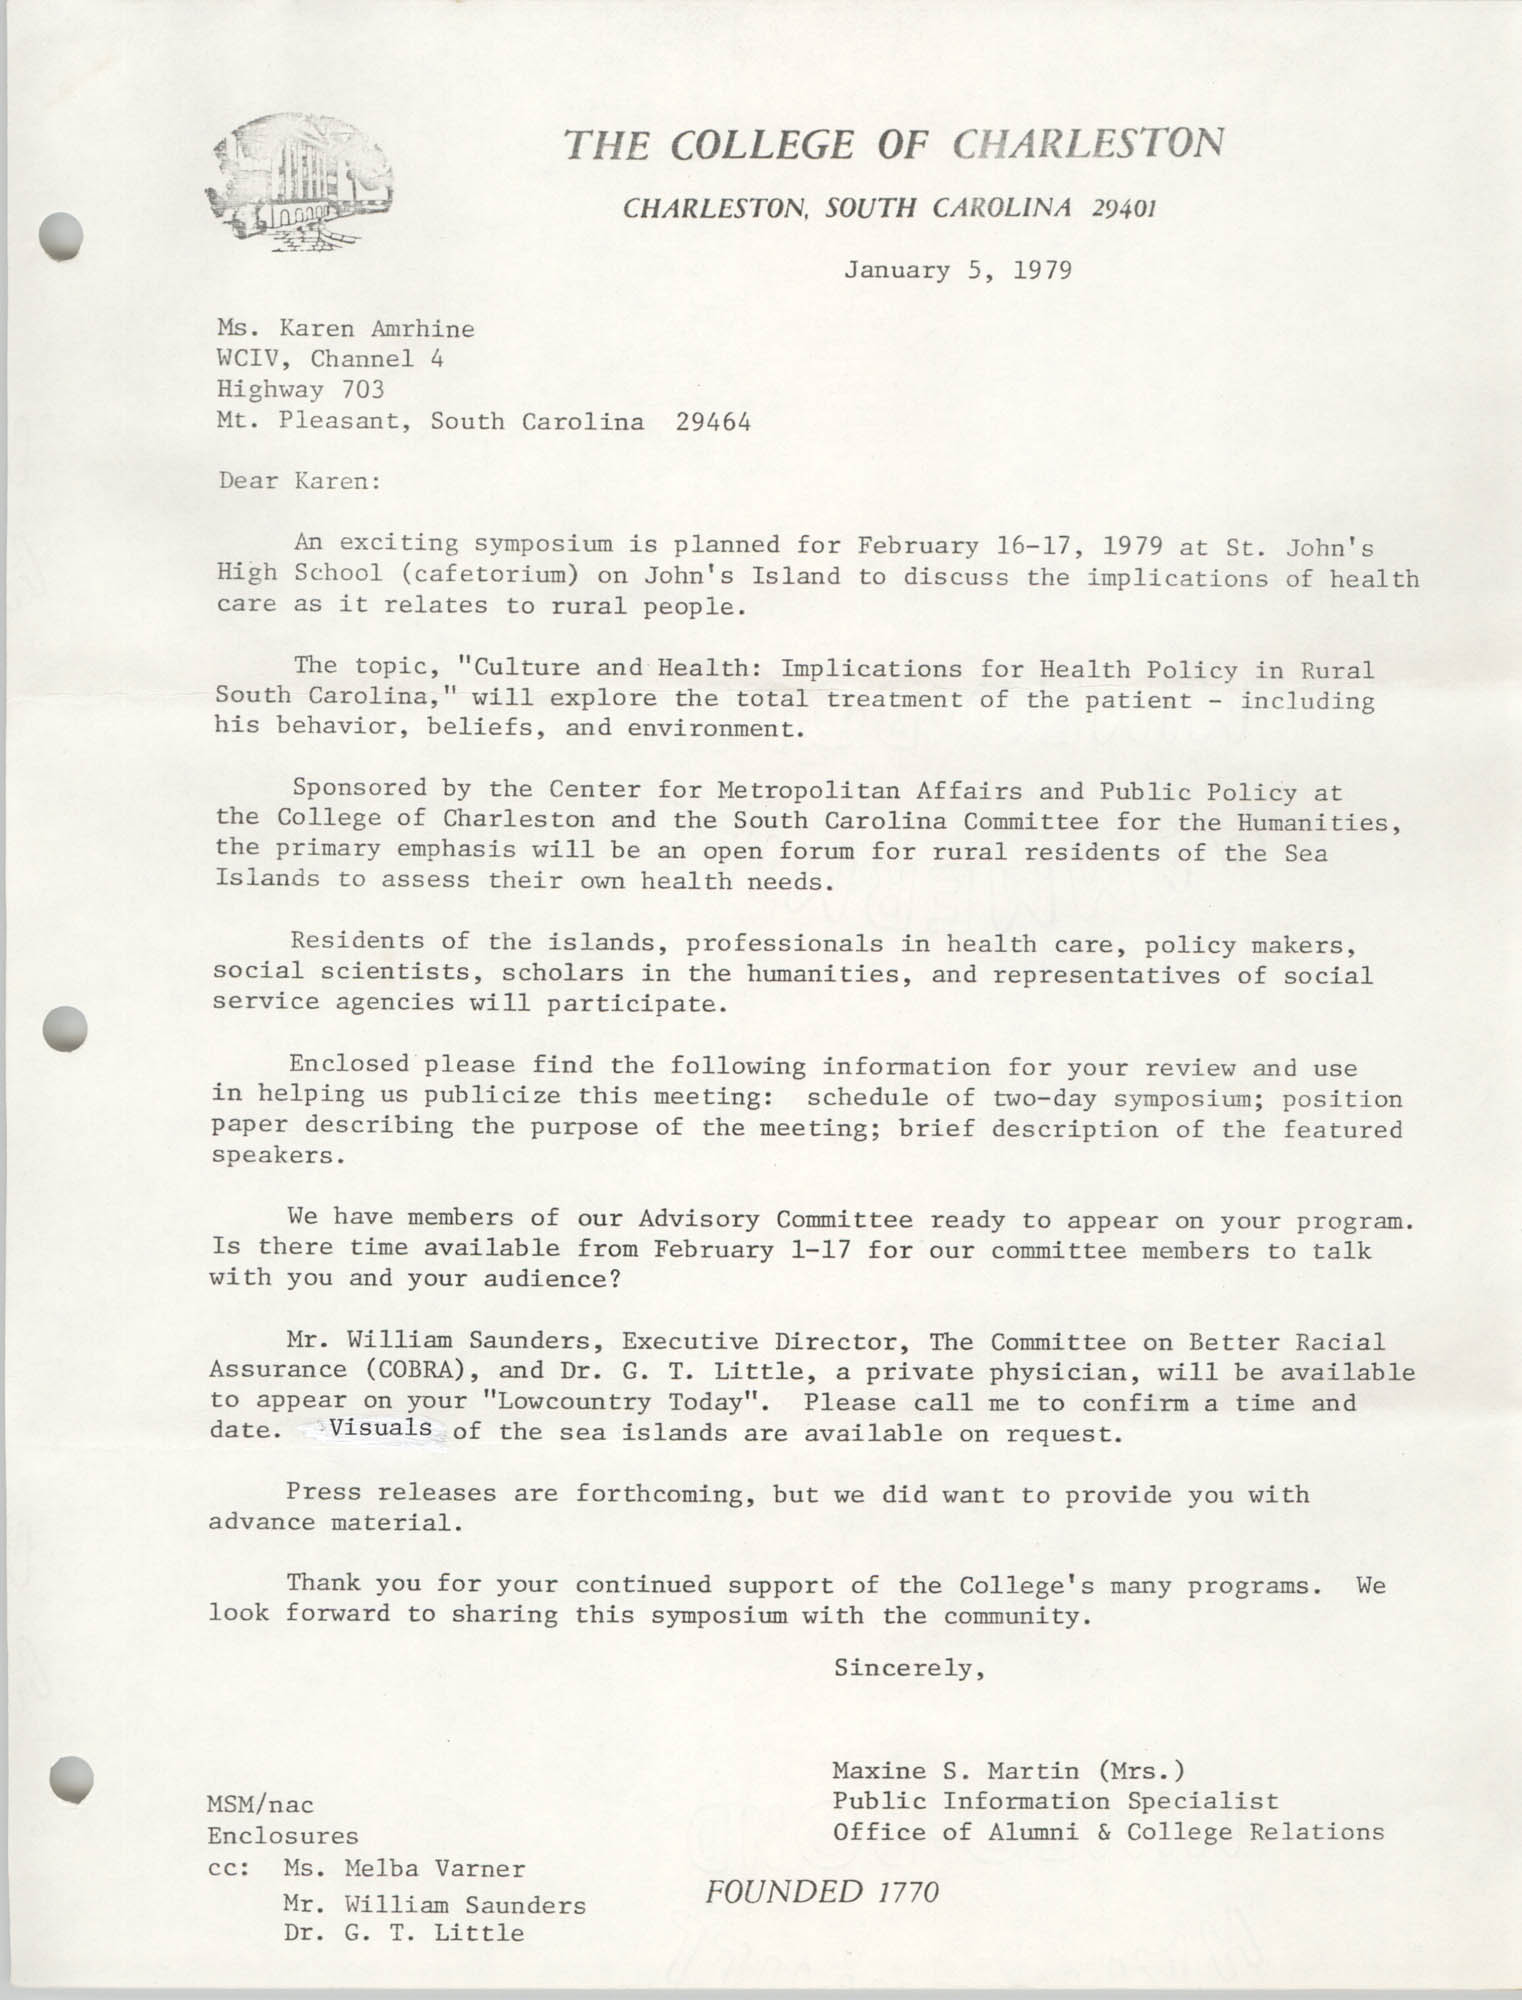 Letter from Maxine S. Martin to Karen Amrihine, January 5, 1979